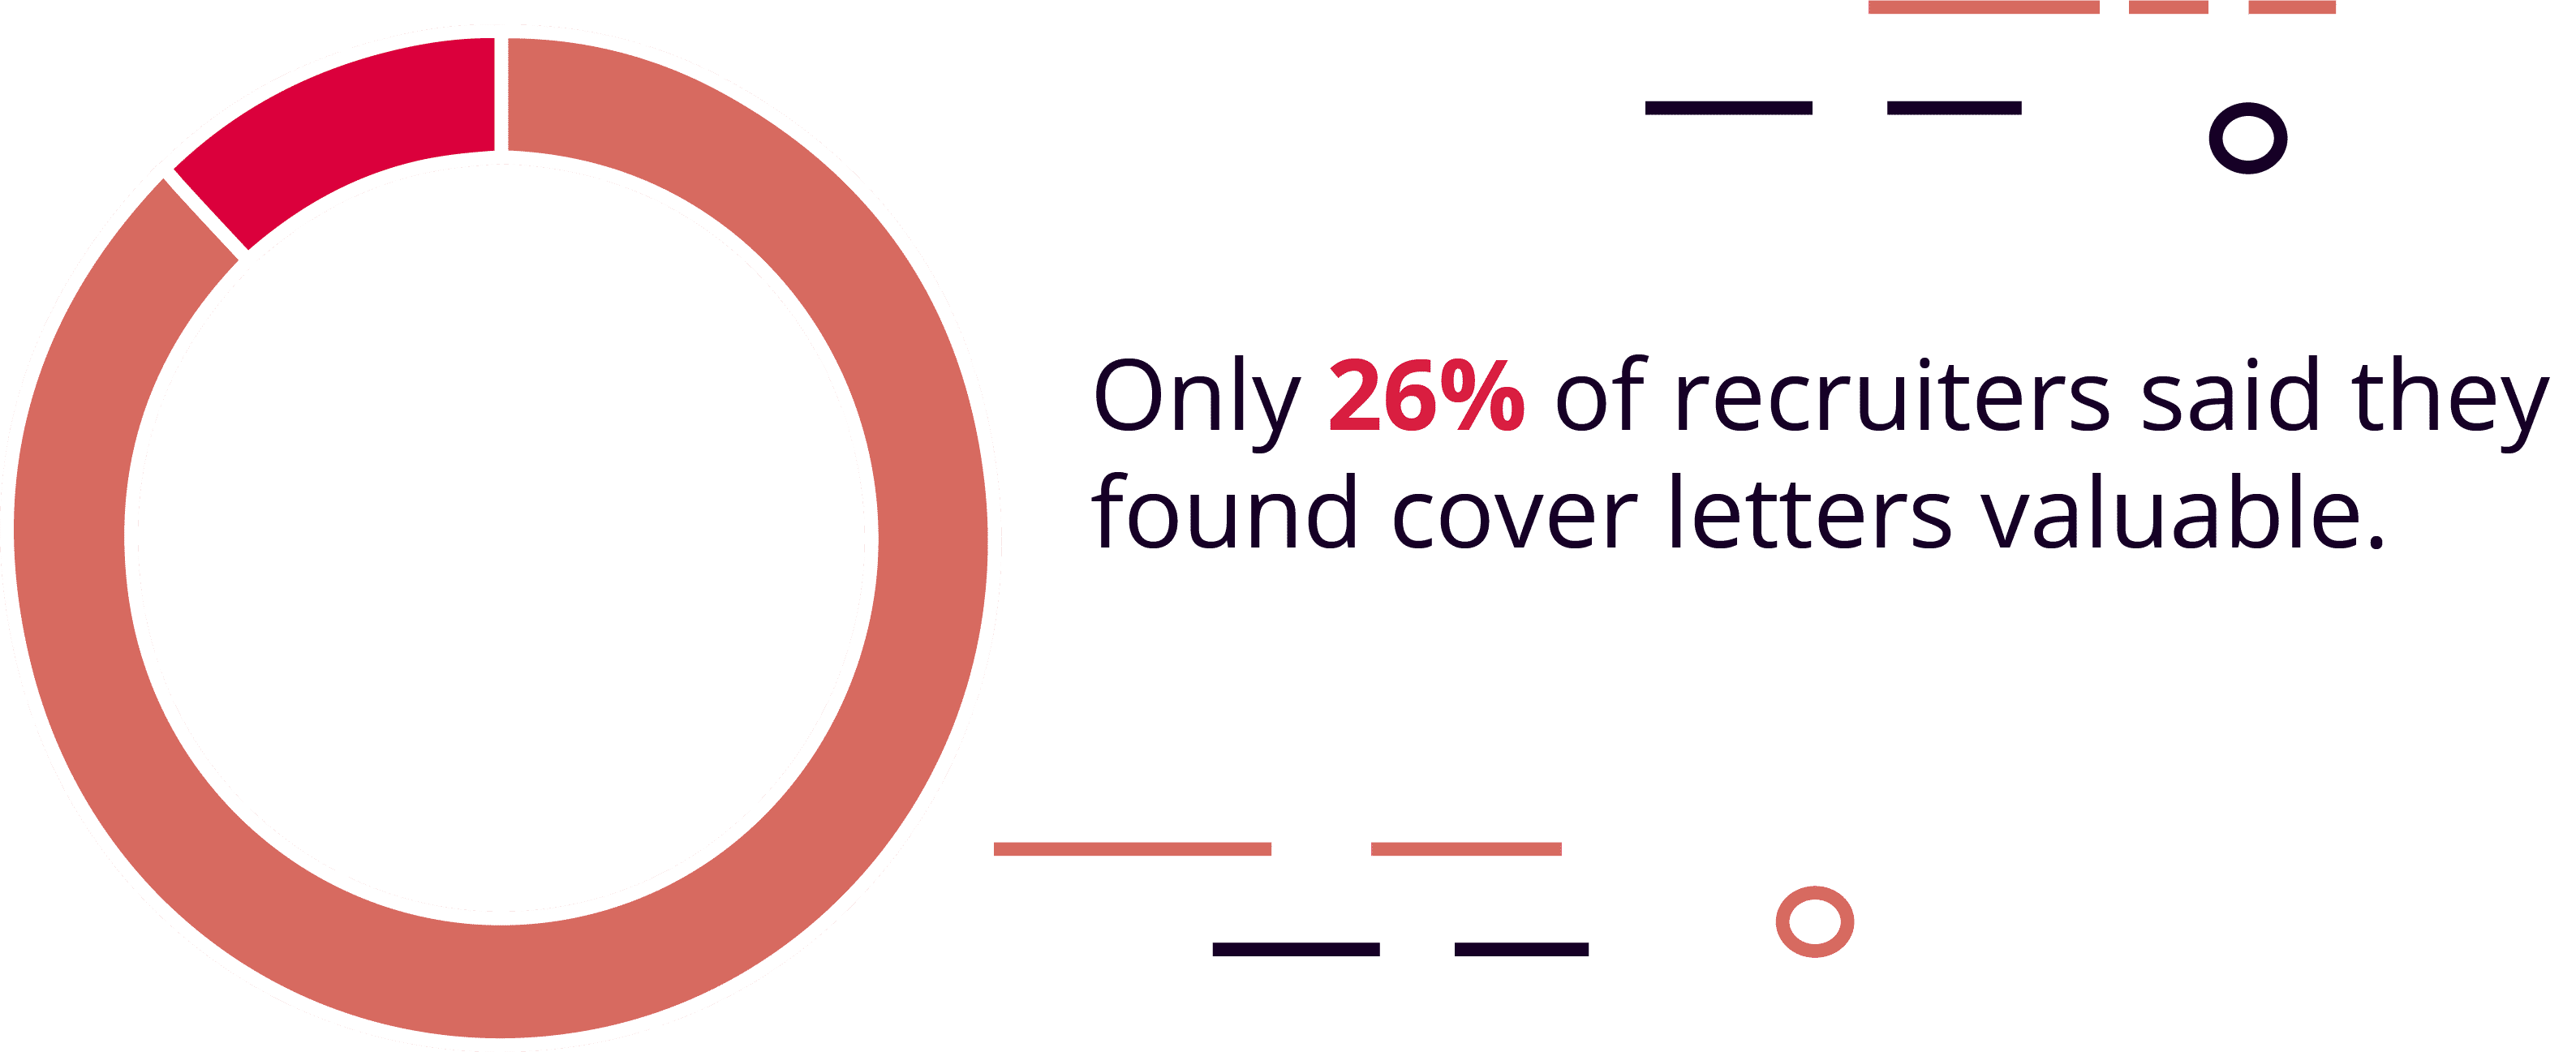 Only 26% of Recruiters Say That a Cover Letter Is Valuable